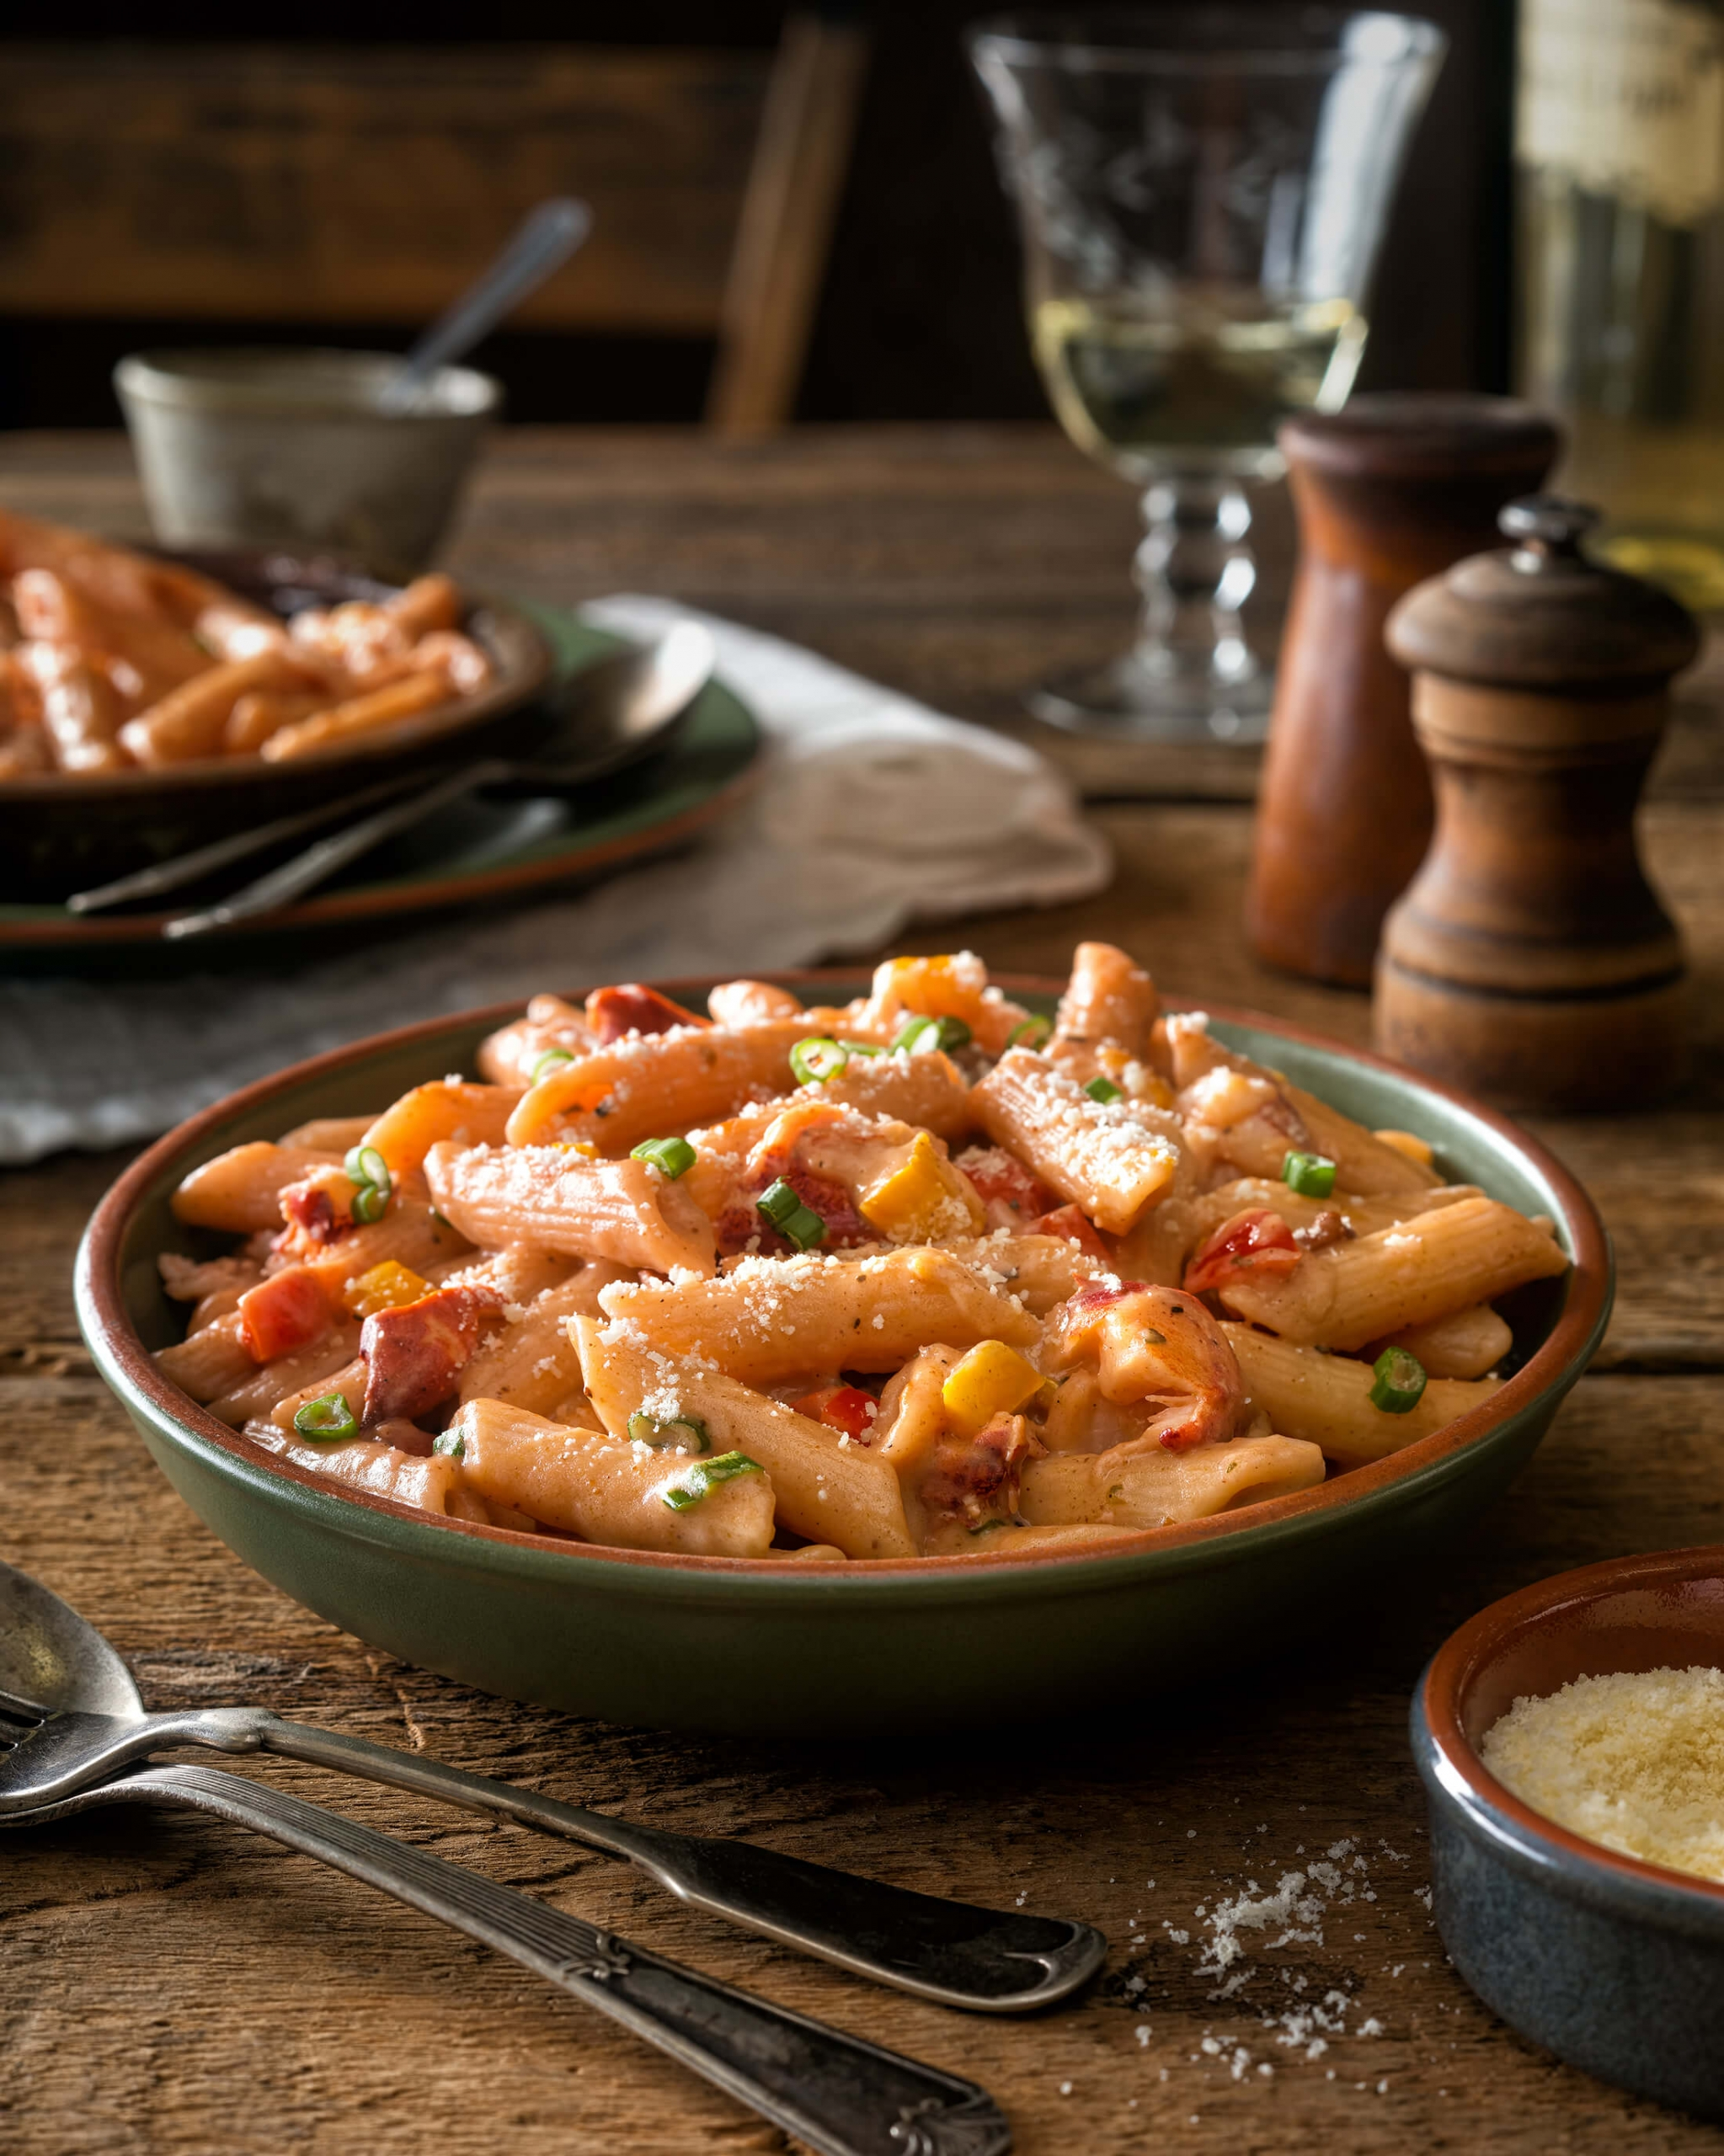 A pasta dish on wooden table